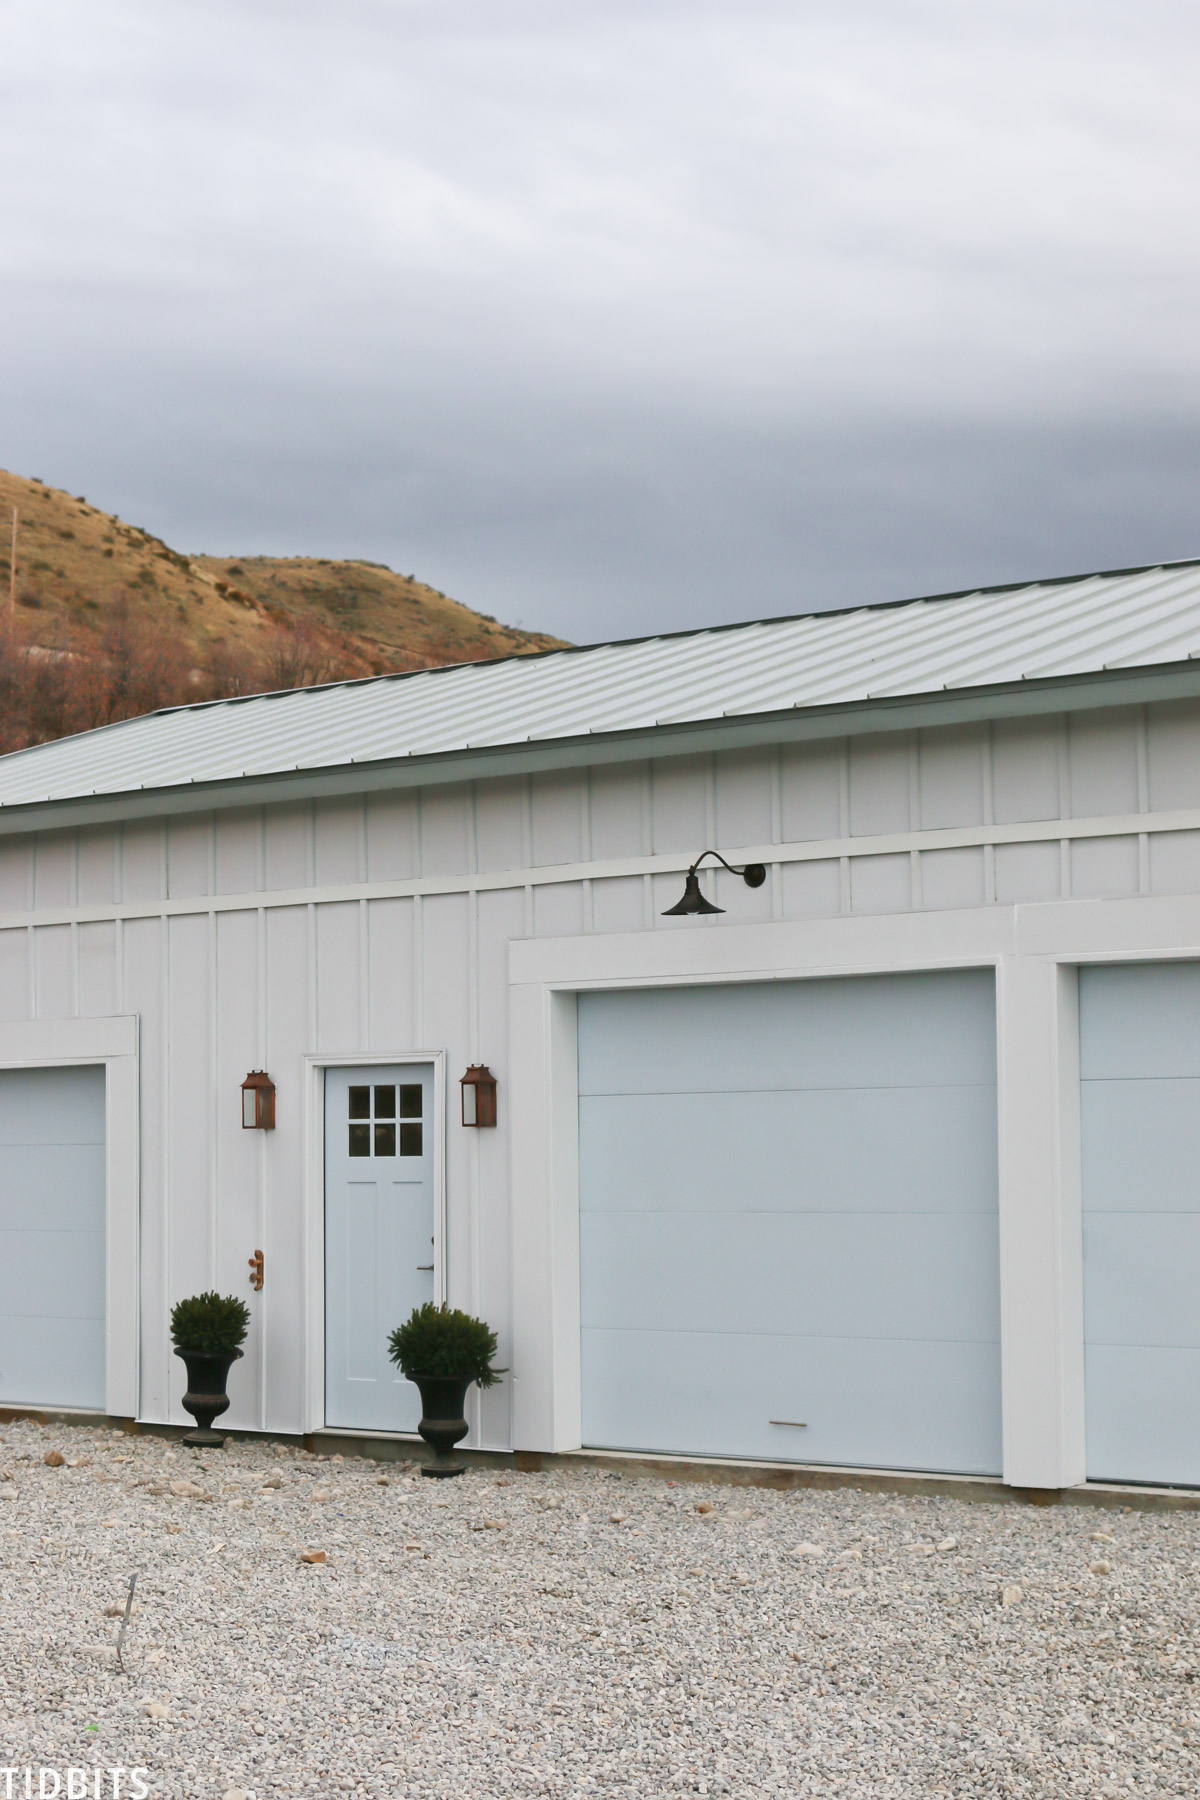 Painted garage doors, steel siding and roofing, pole barn home.